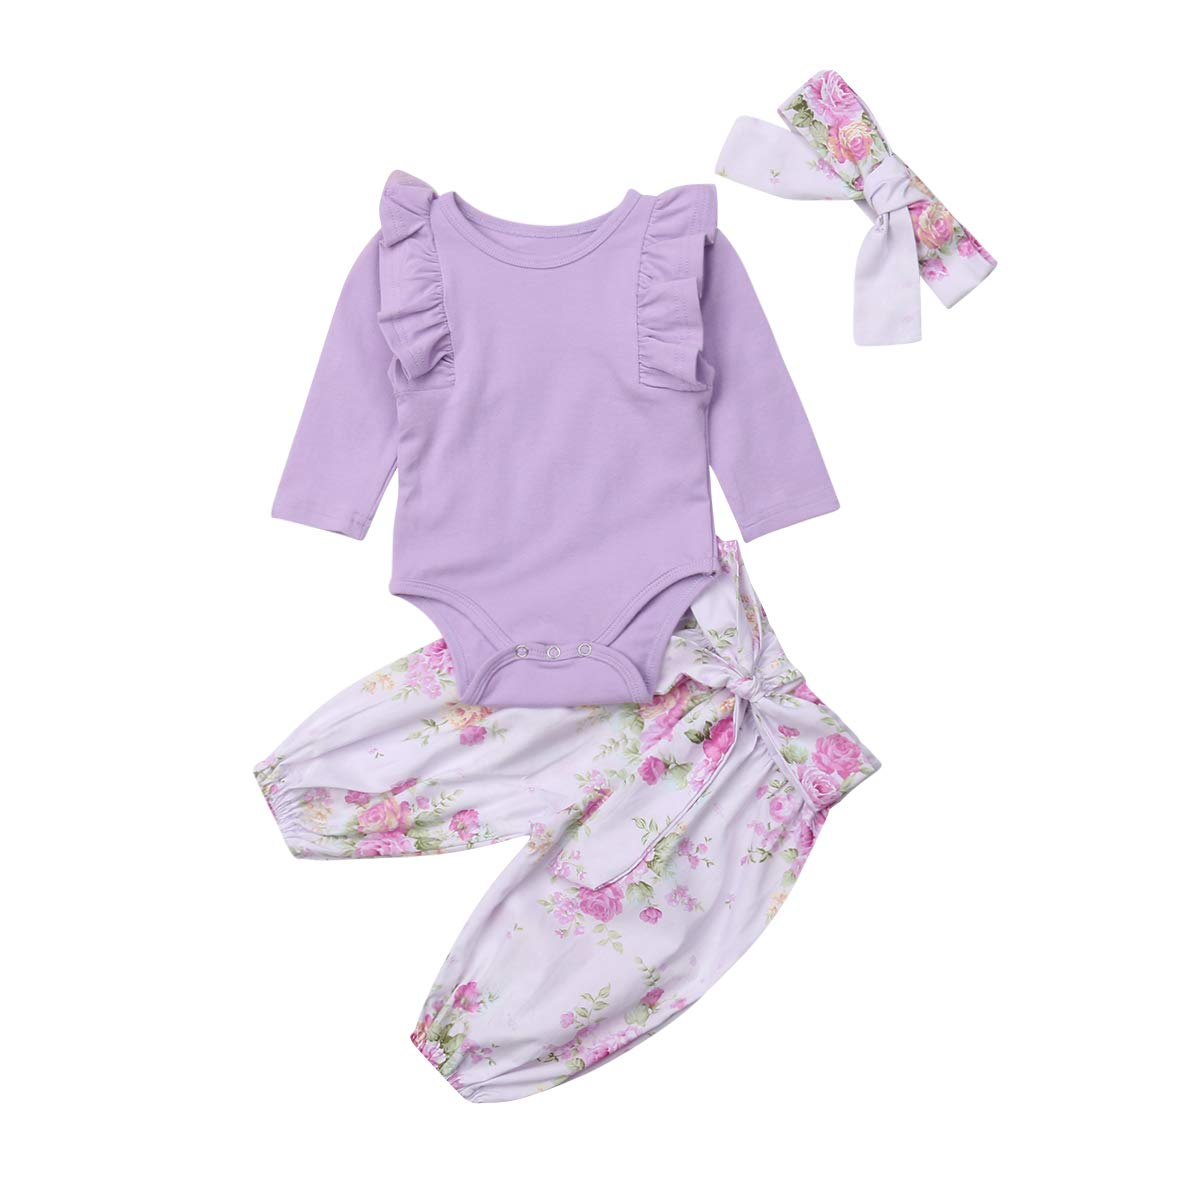 3PCS Baby Girl Clothes Ruffle Long Sleeve Romper Bodysuit Tops Floral Pants Headband Outfits